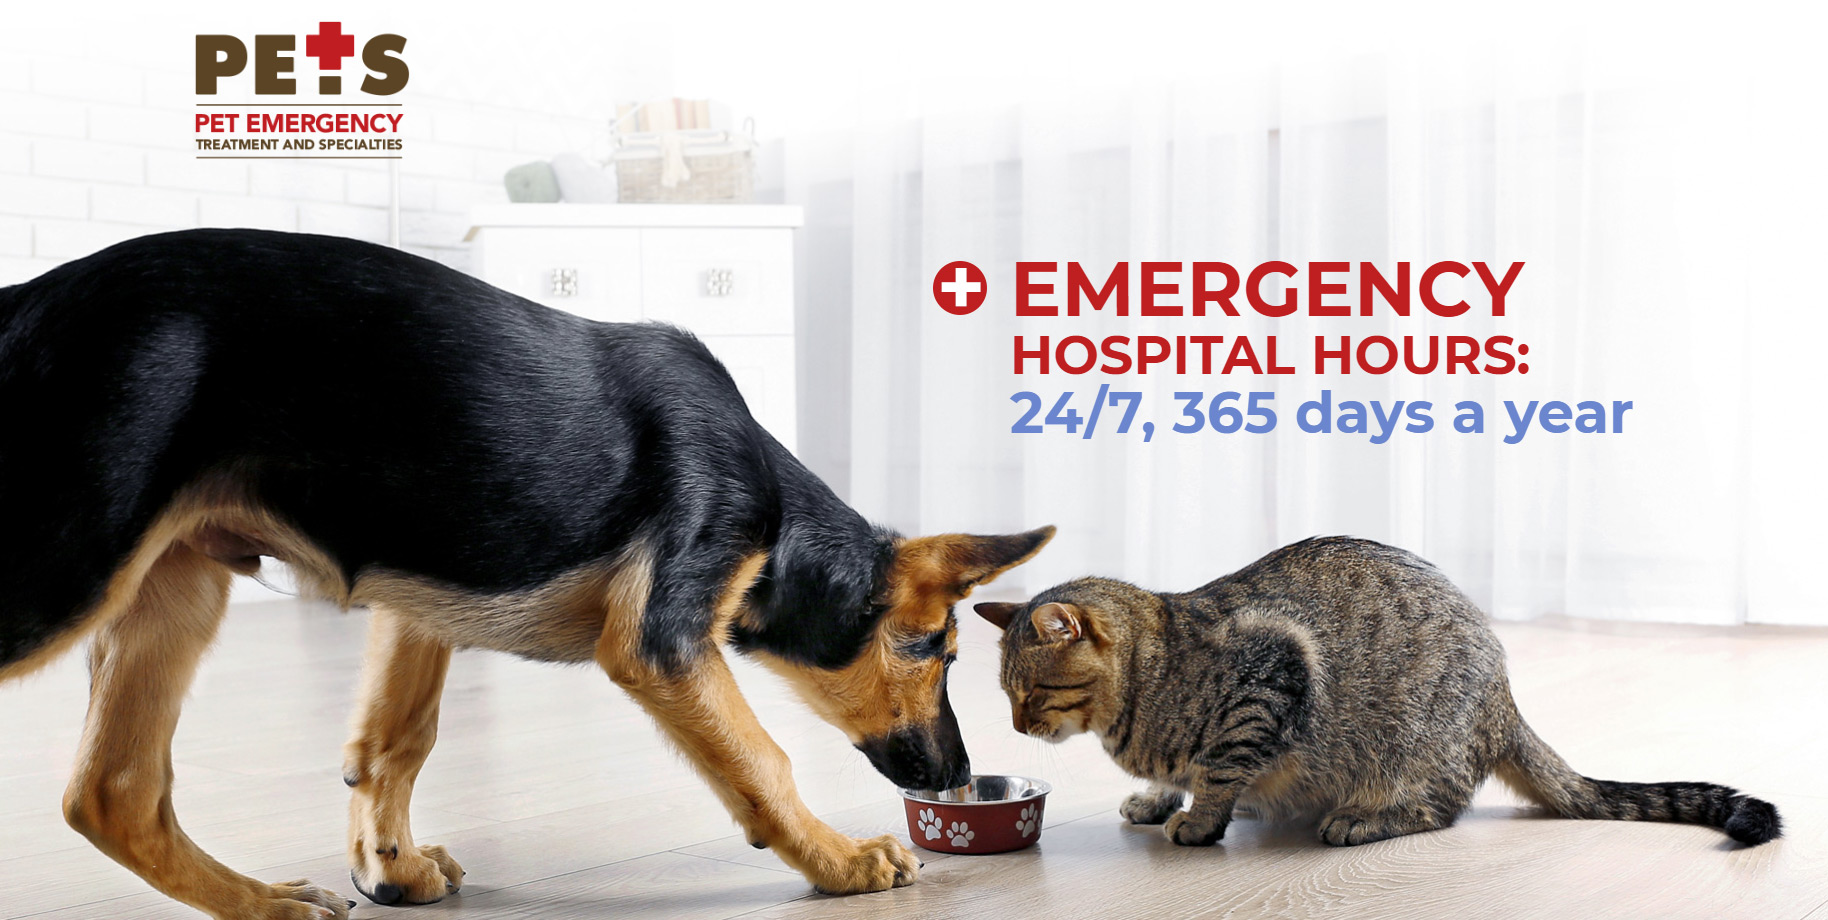 Emergency Hospital Hours: 24/7, 365 days a year